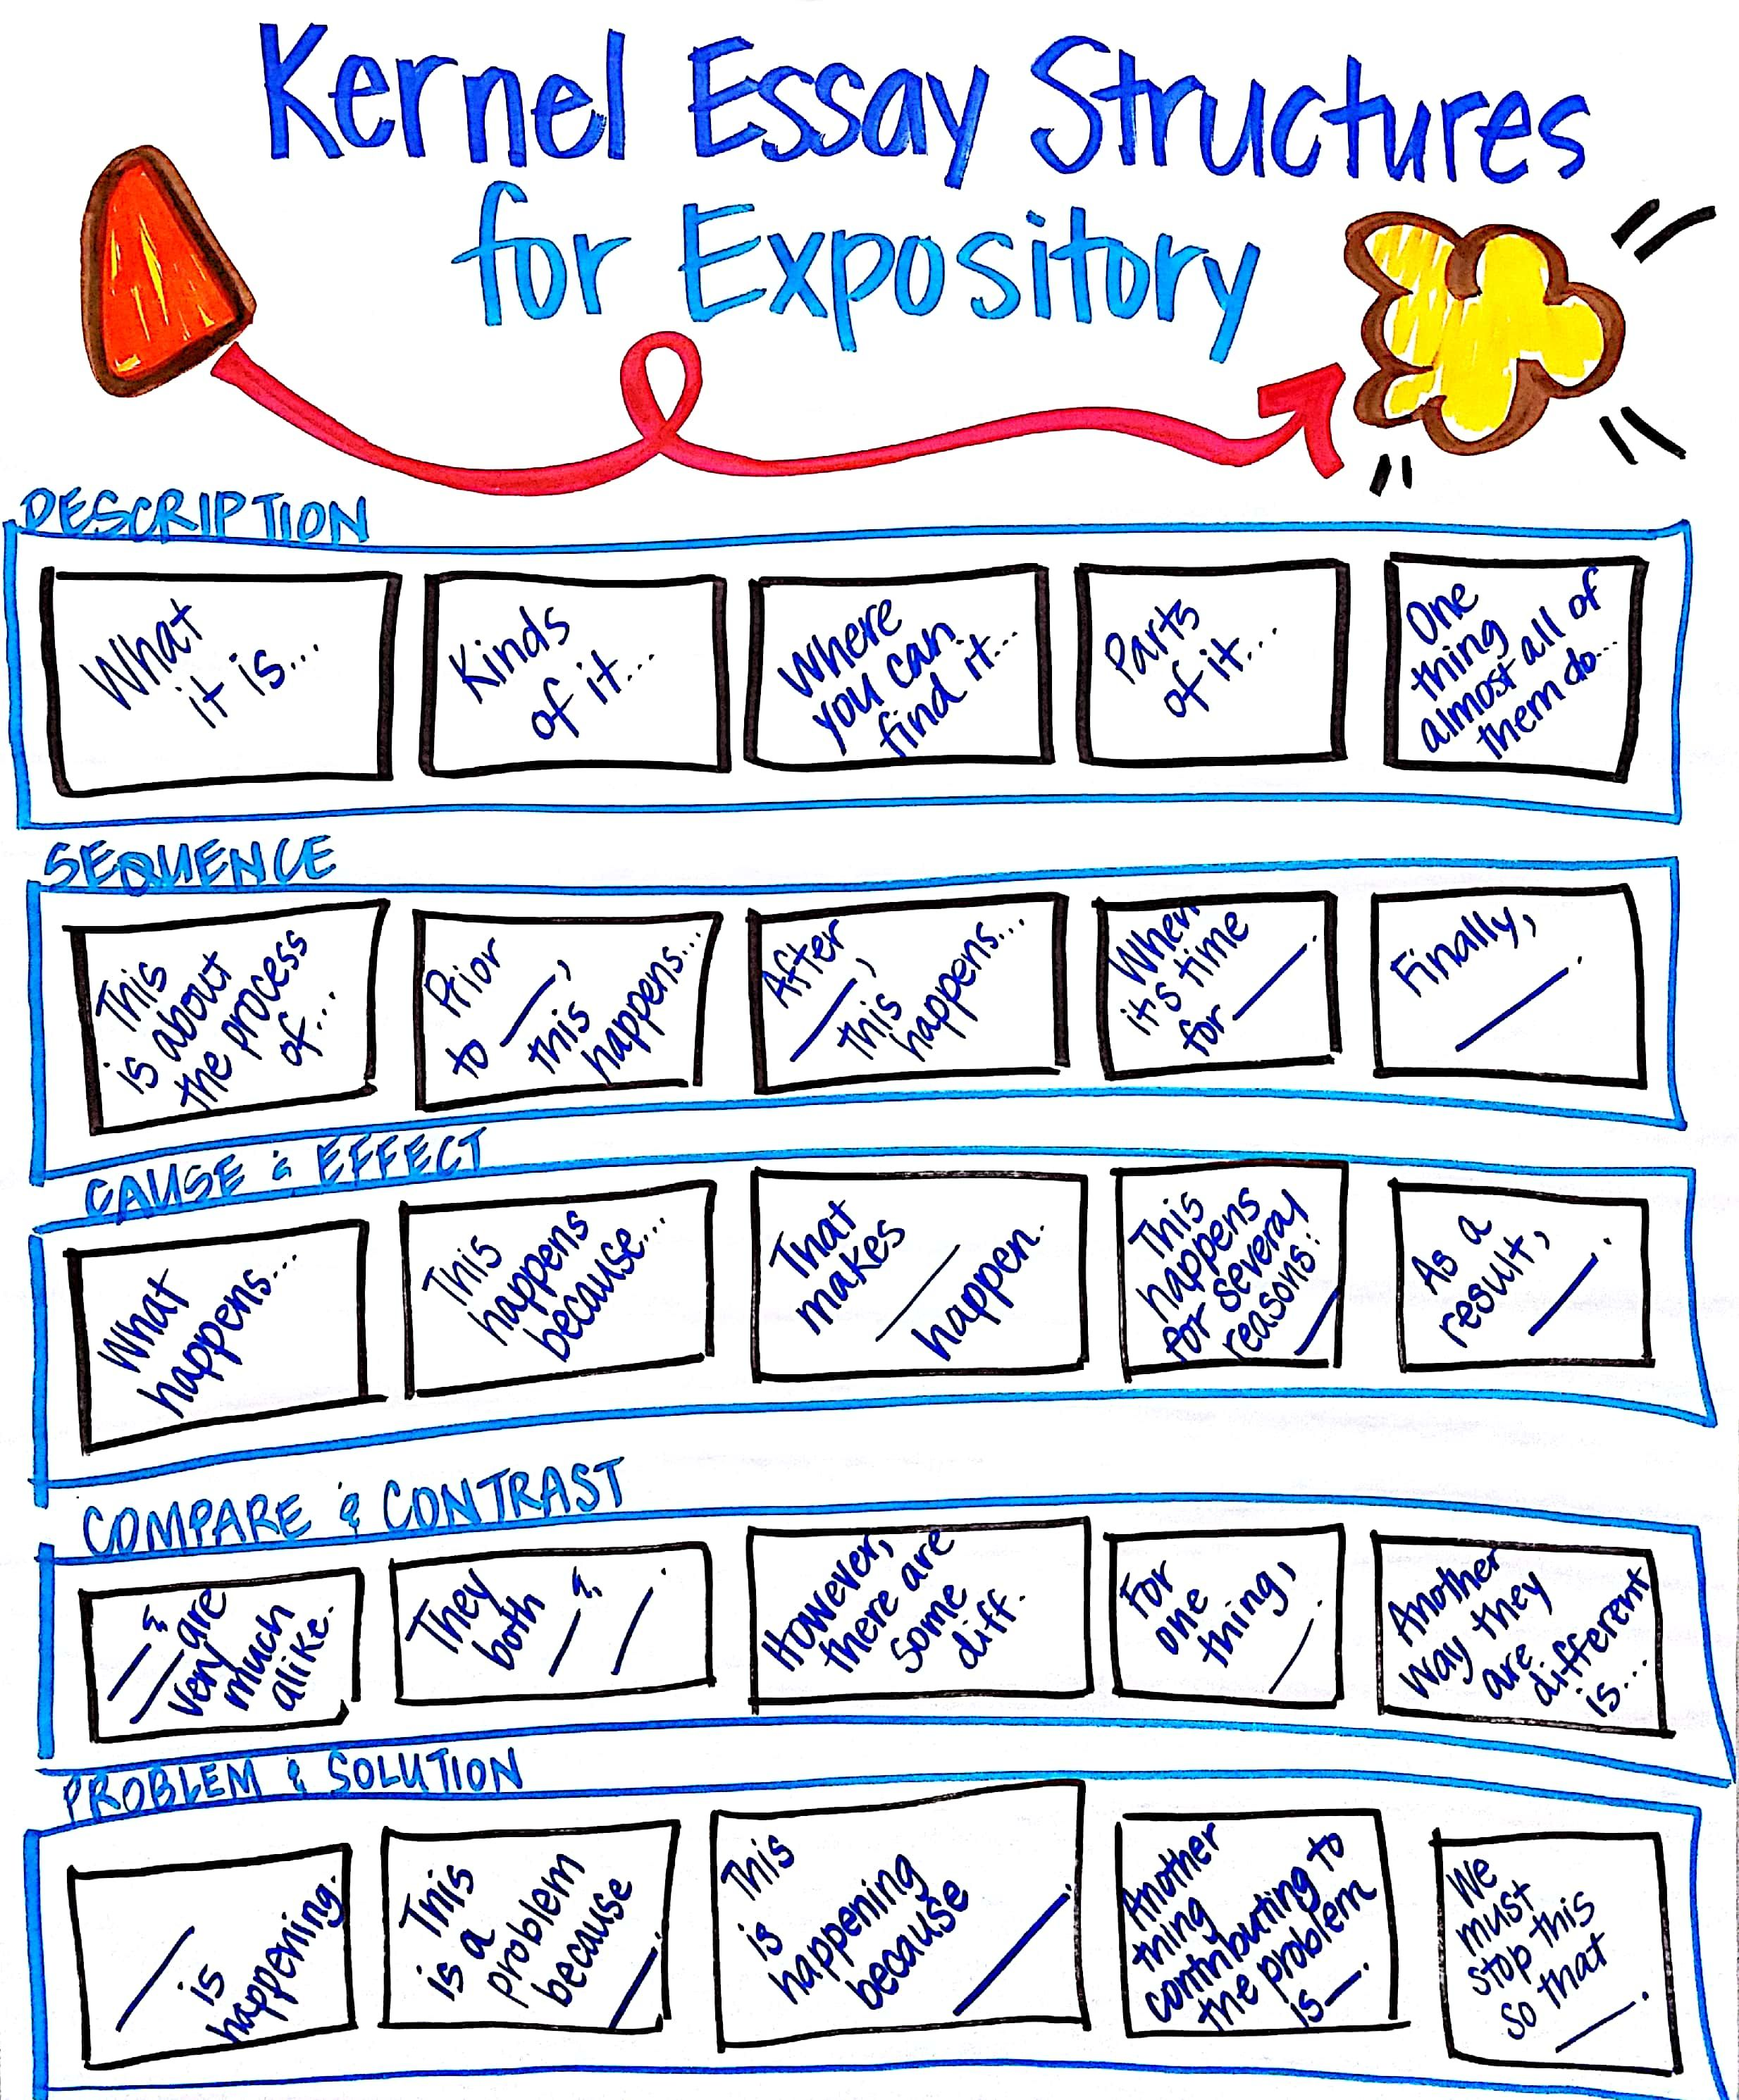 Pin By Tracy Smith On Writing In 2021 Expository Anchor Chart Curriculum Type Essay Structures Structure